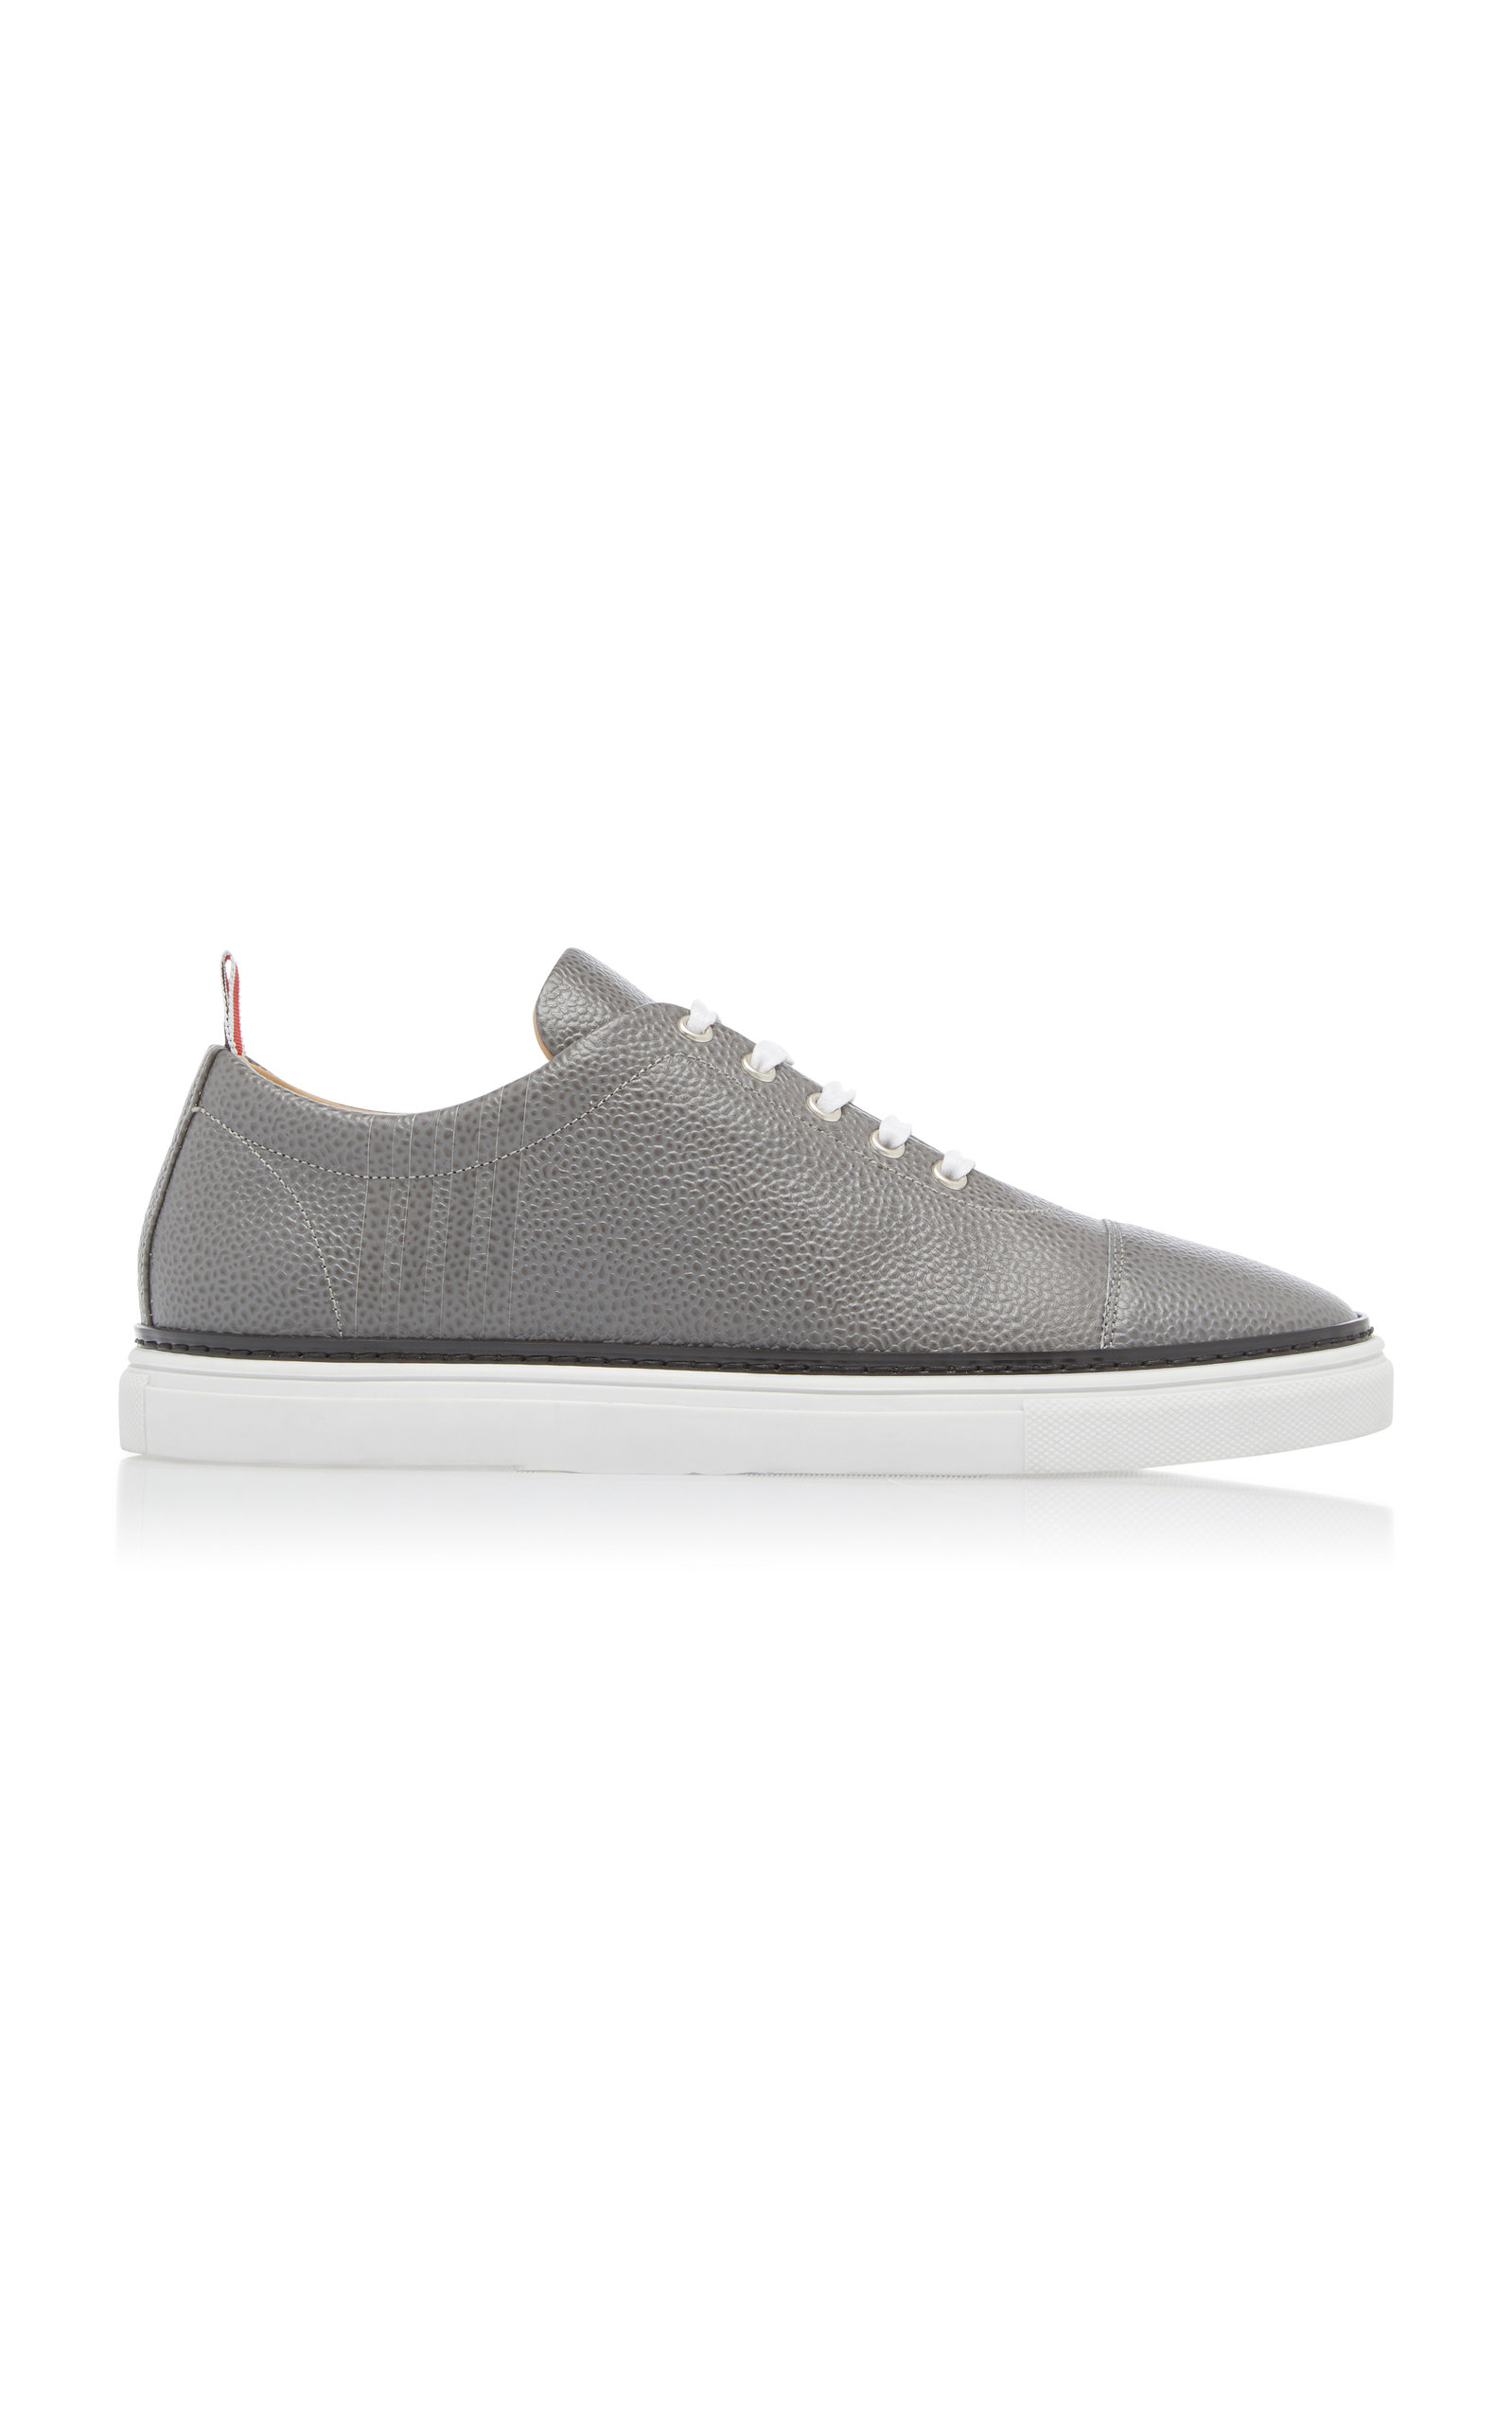 d4e3ce635b0 Pebble-Grain Leather Cap-Toe Sneakers by Thom Browne